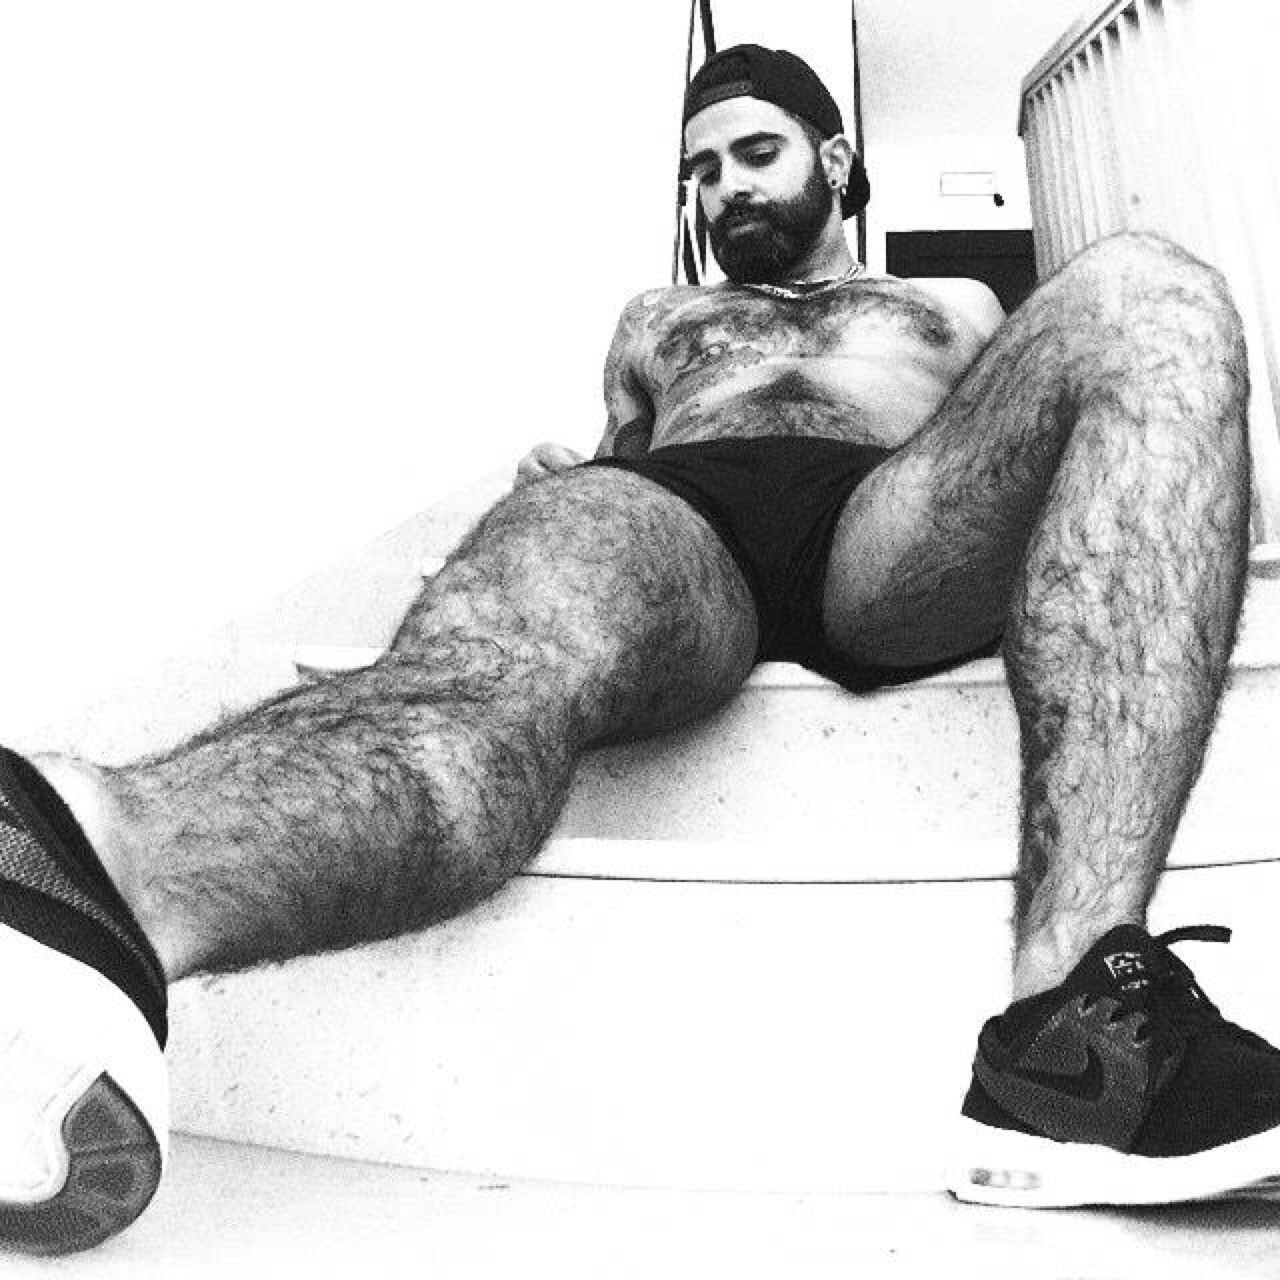 Hairy boys legs love